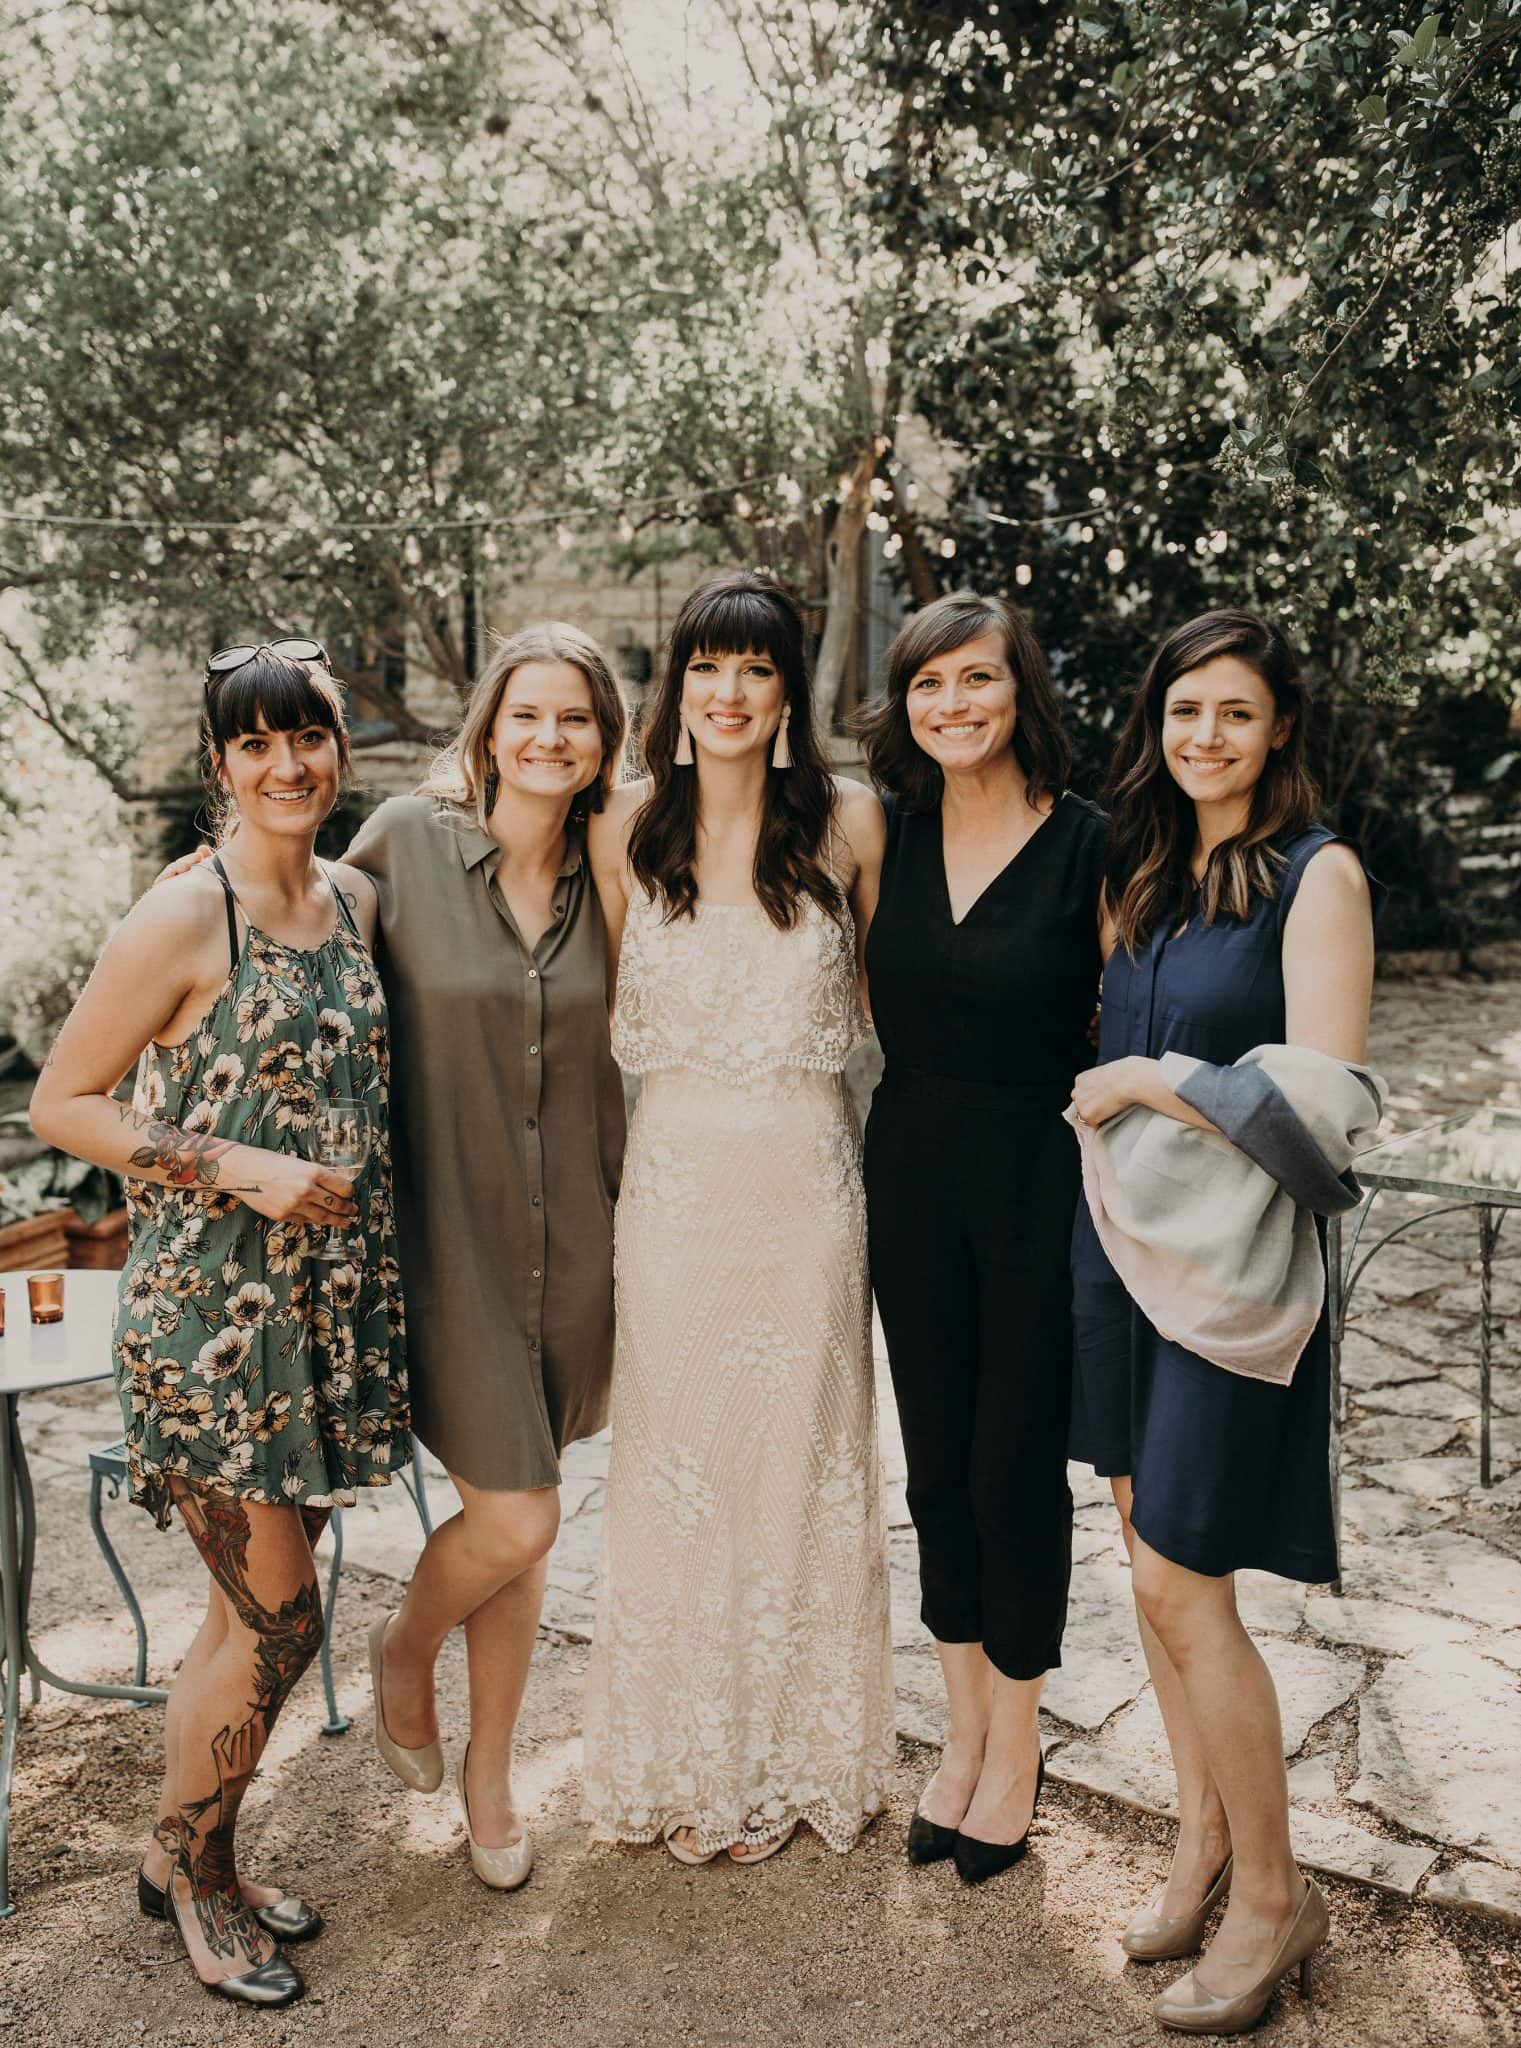 Bride and her female friends standing side-by-side and smiling at the camera while in a patio with cobblestone flooring and trees in the background. Photograph by Austin, Texas wedding photographer Nikk Nguyen.